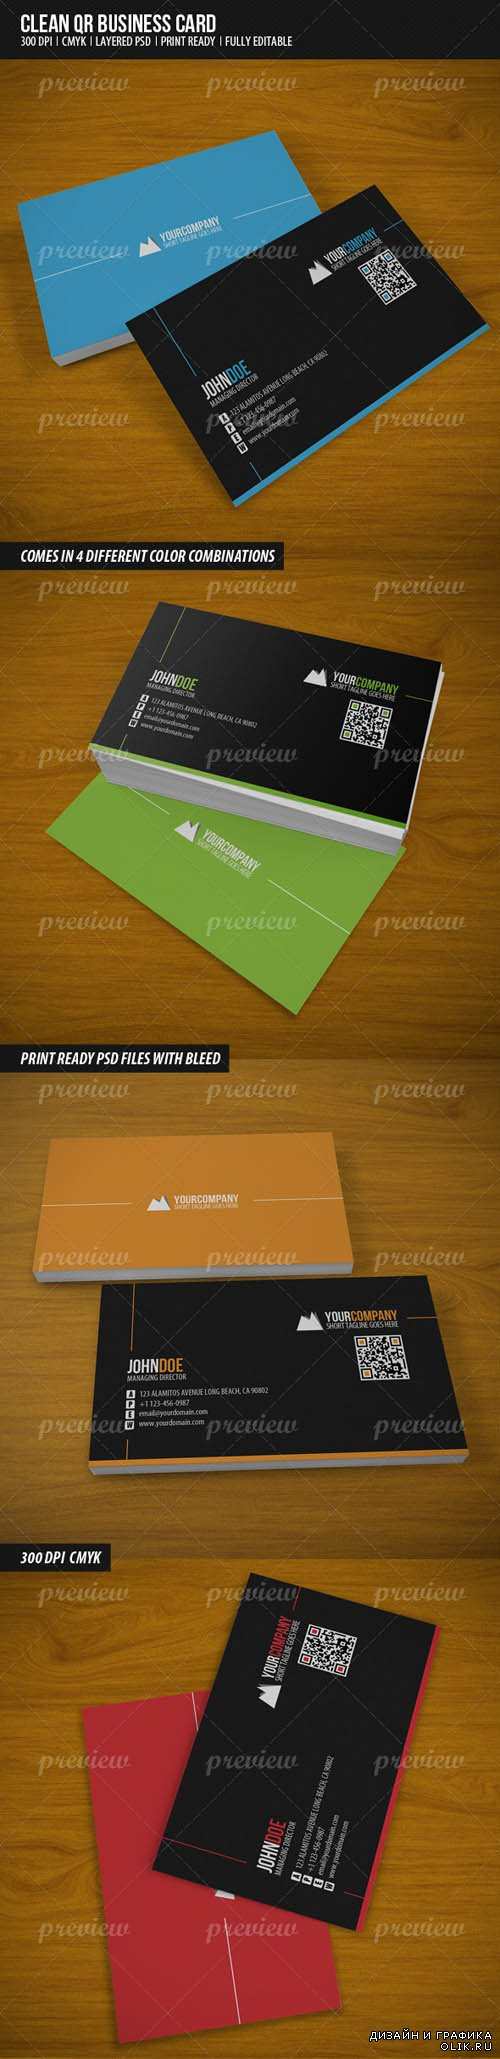 Template PSD - Clean QR Business Card